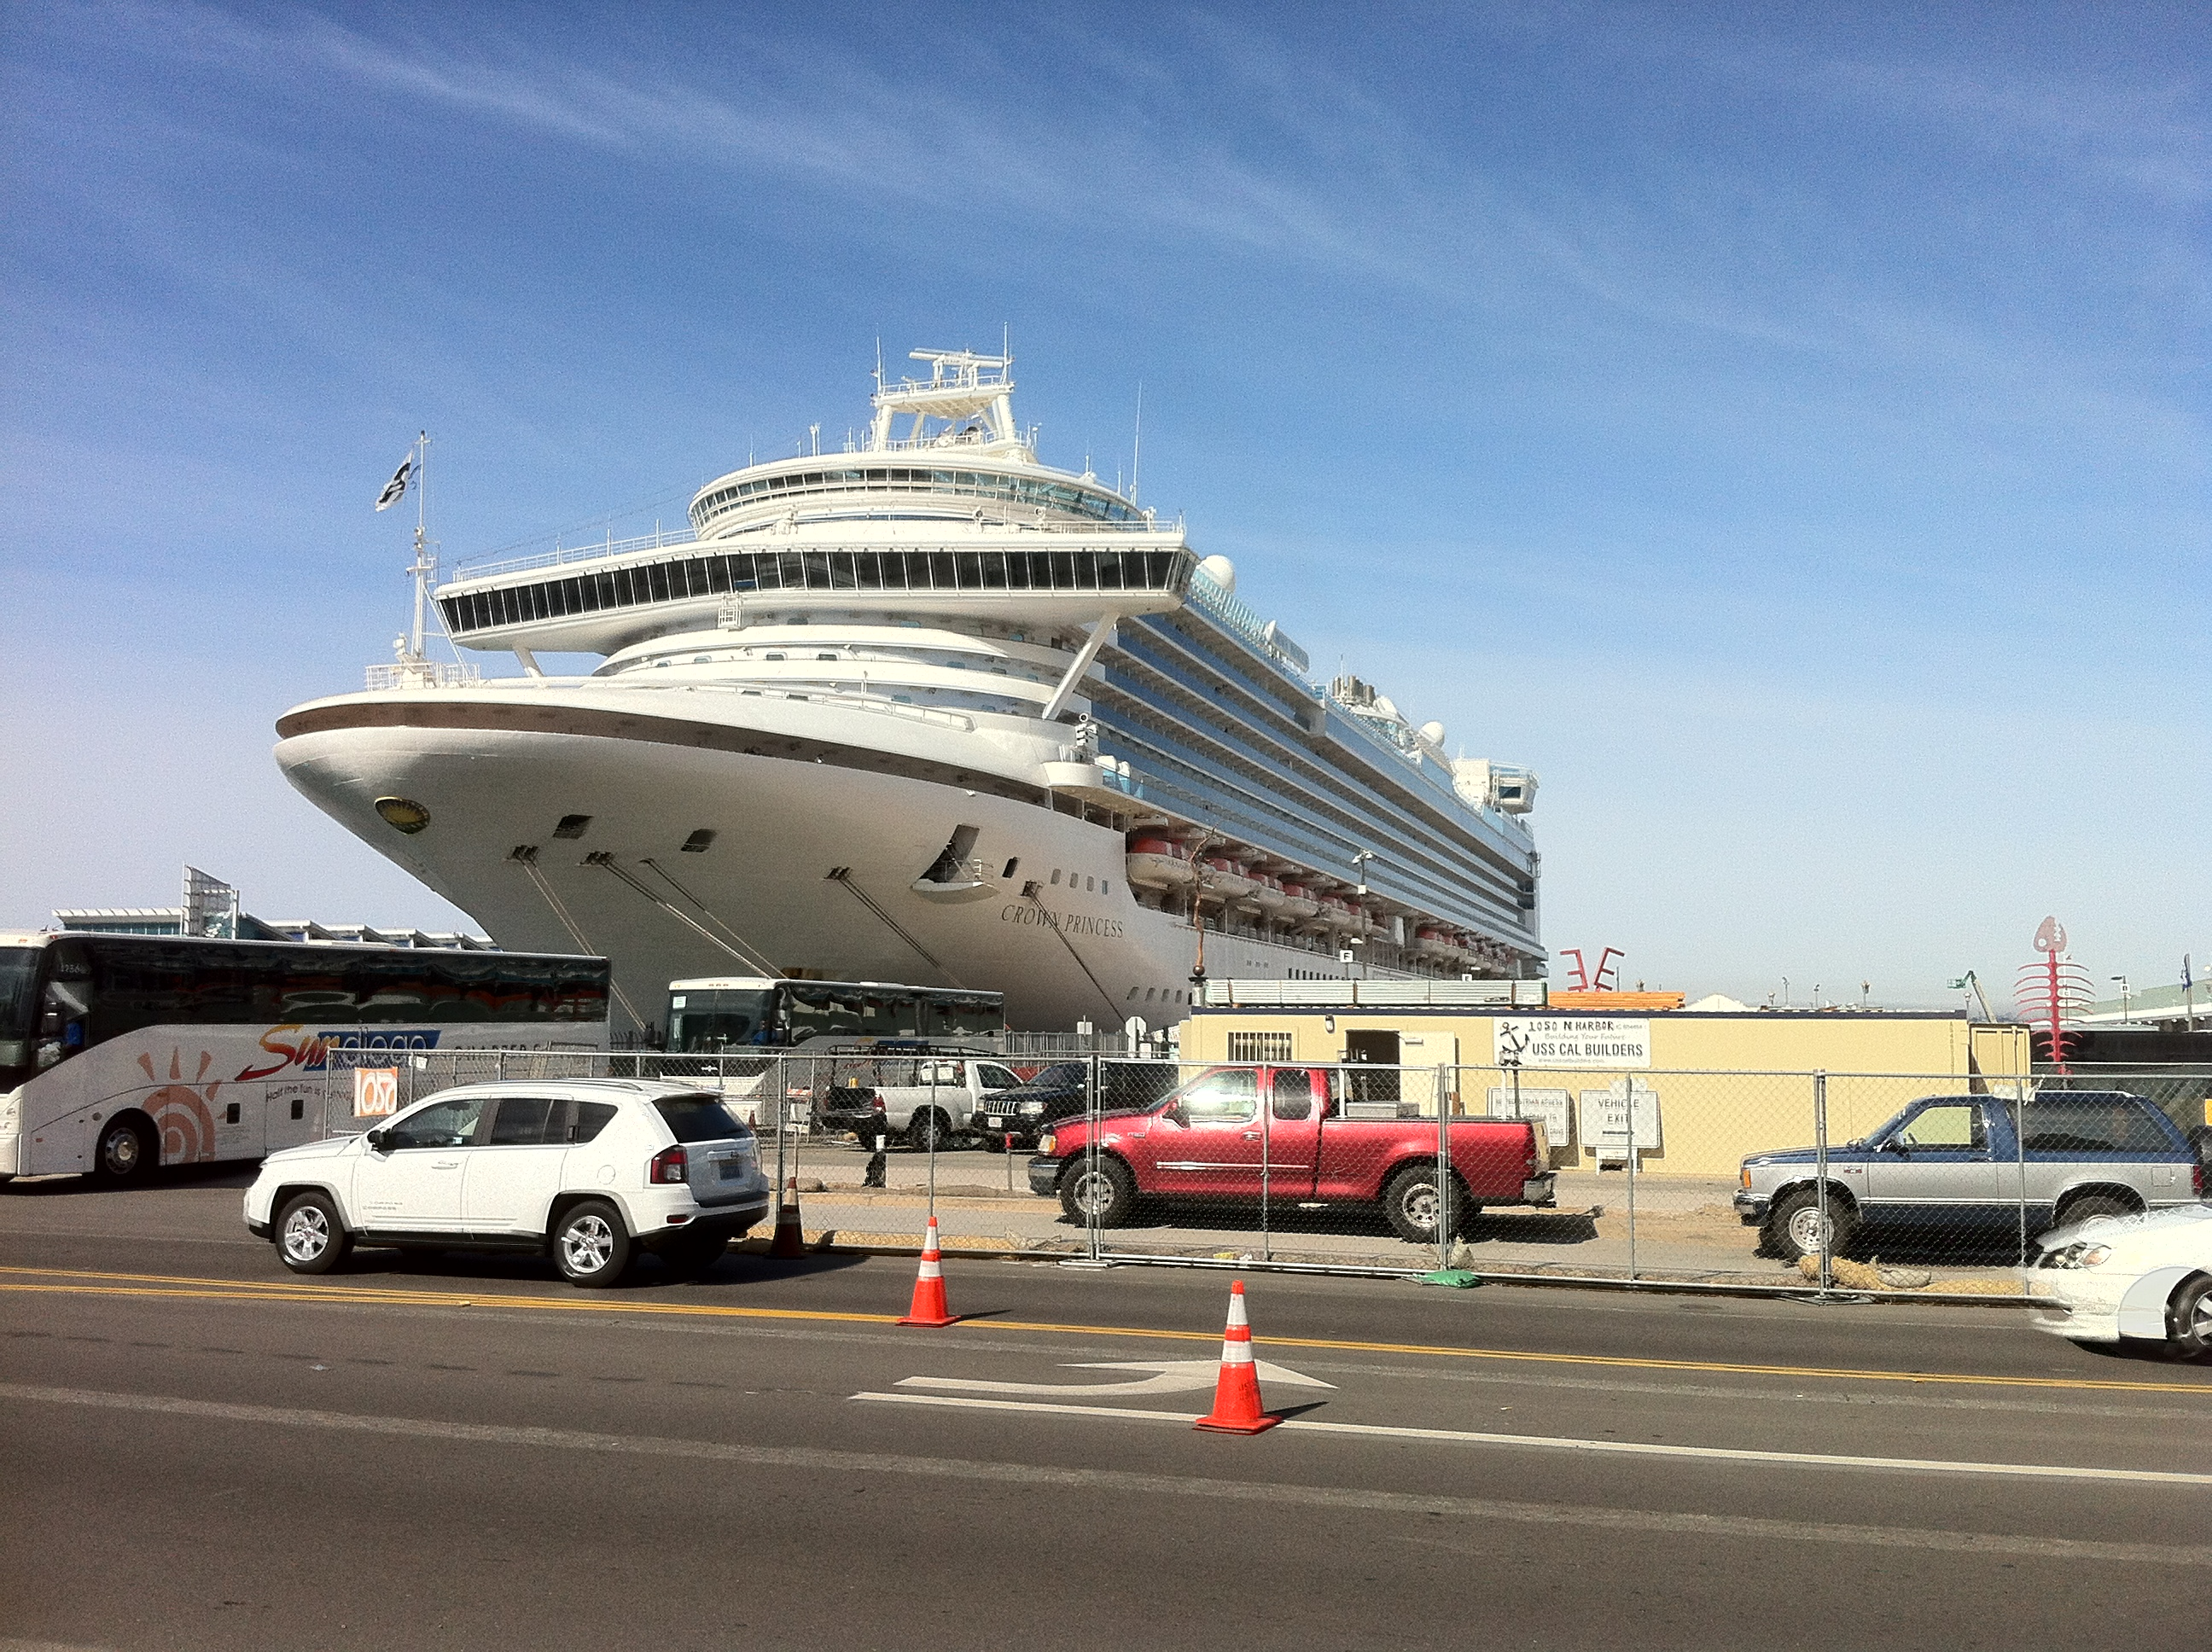 Crown Princess Cruise cut short by norovirus